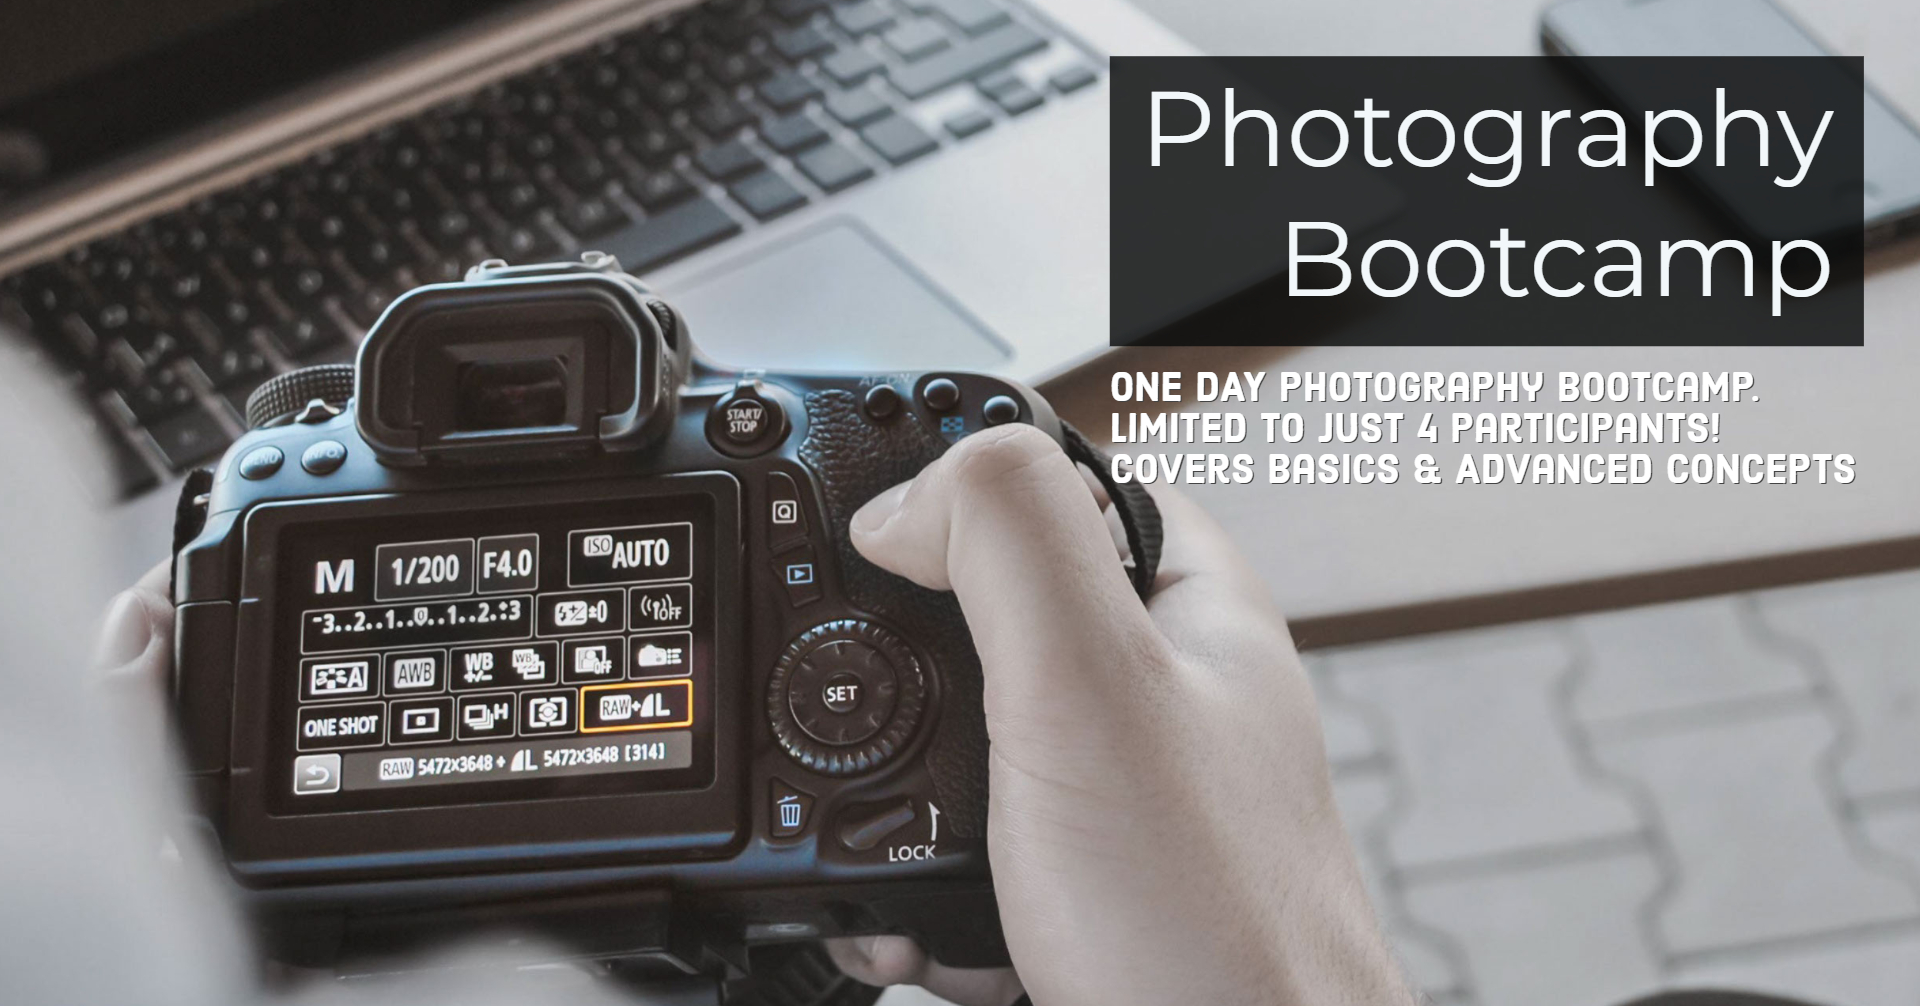 Photography Bootcamp